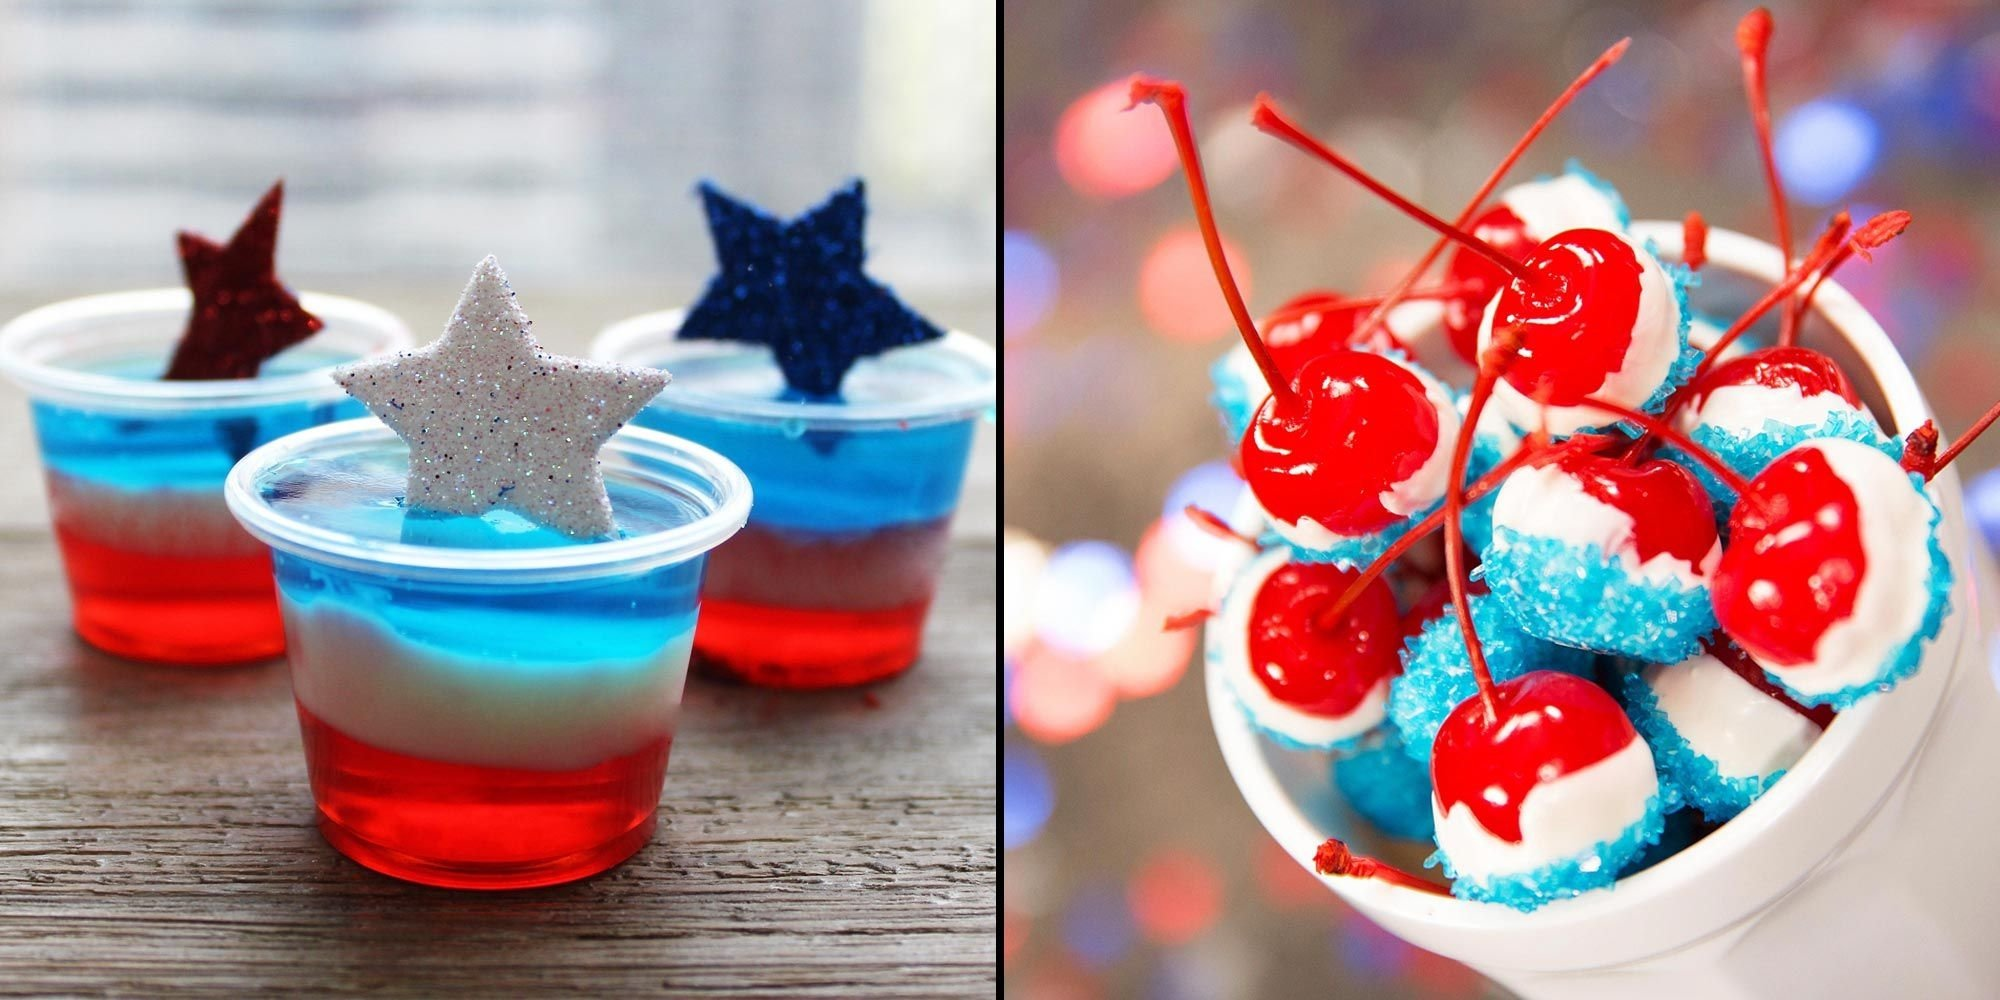 10 Nice Fourth Of July Drink Ideas 4th of july drinks 29 red white and blue cocktail recipes 1 2020